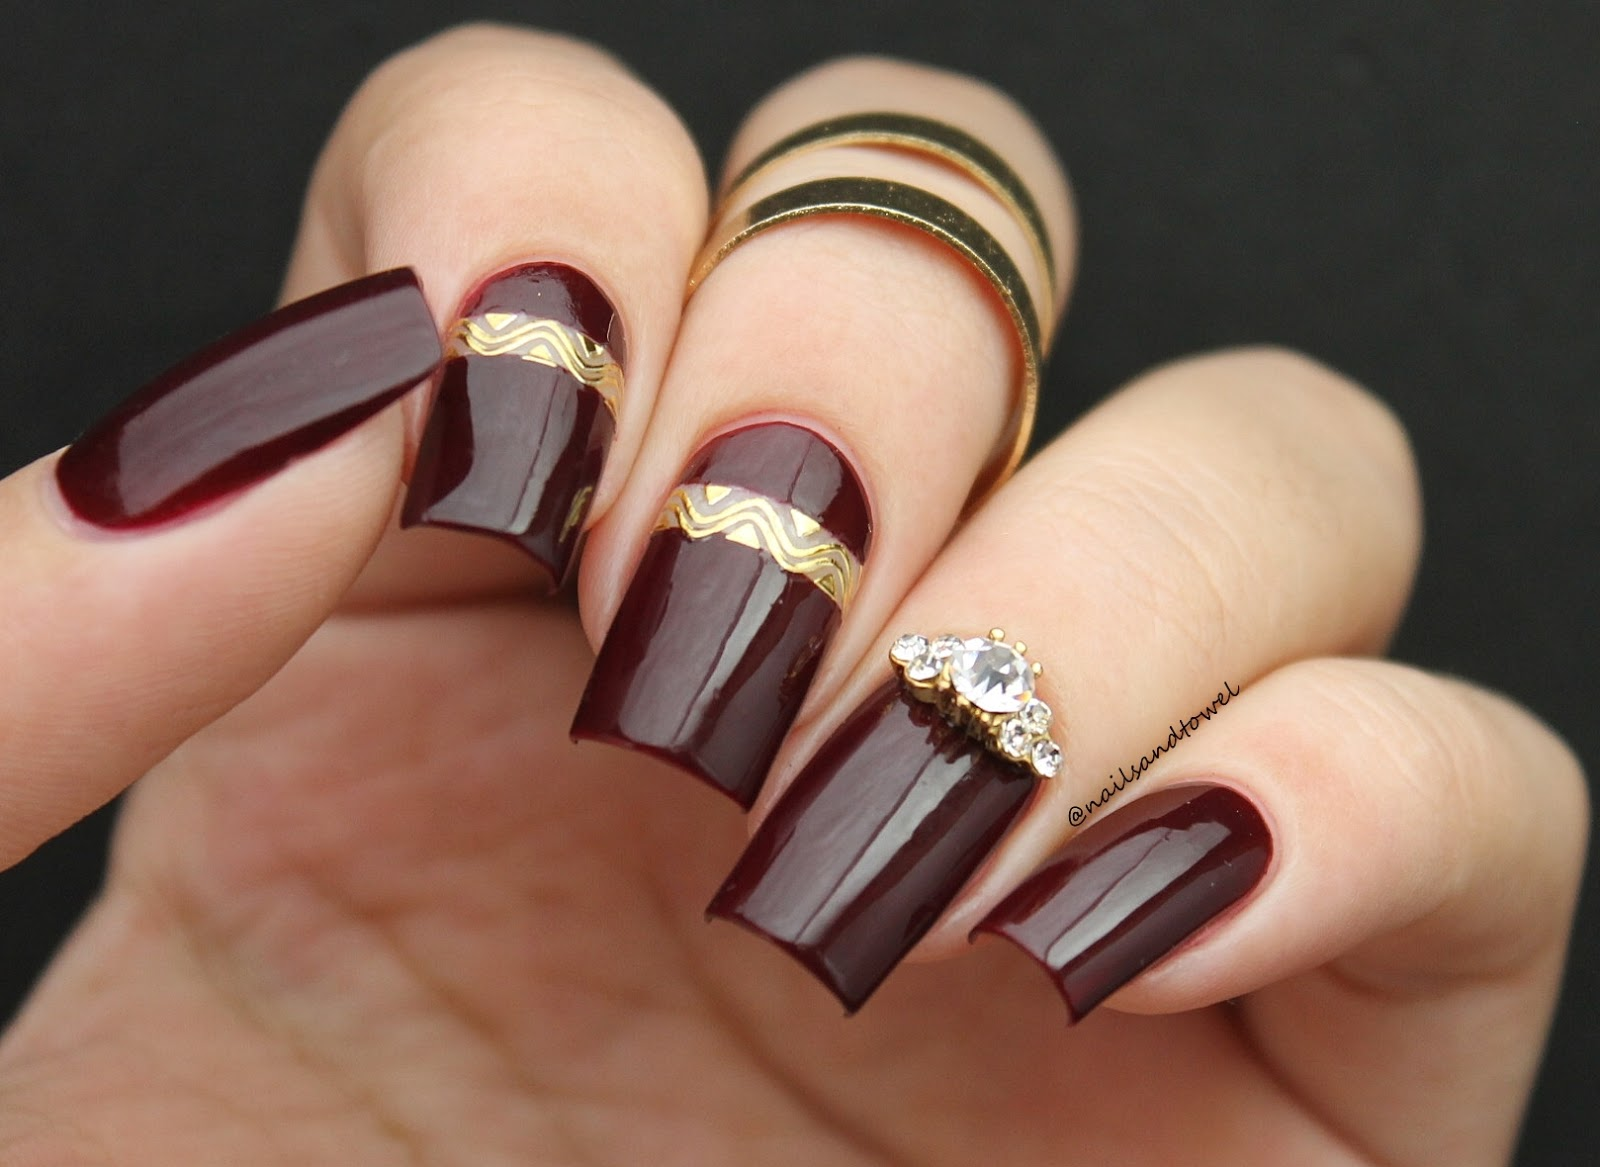 My Nail Art Journal Medieval Queen Inspired Nails Ft Daily Charme